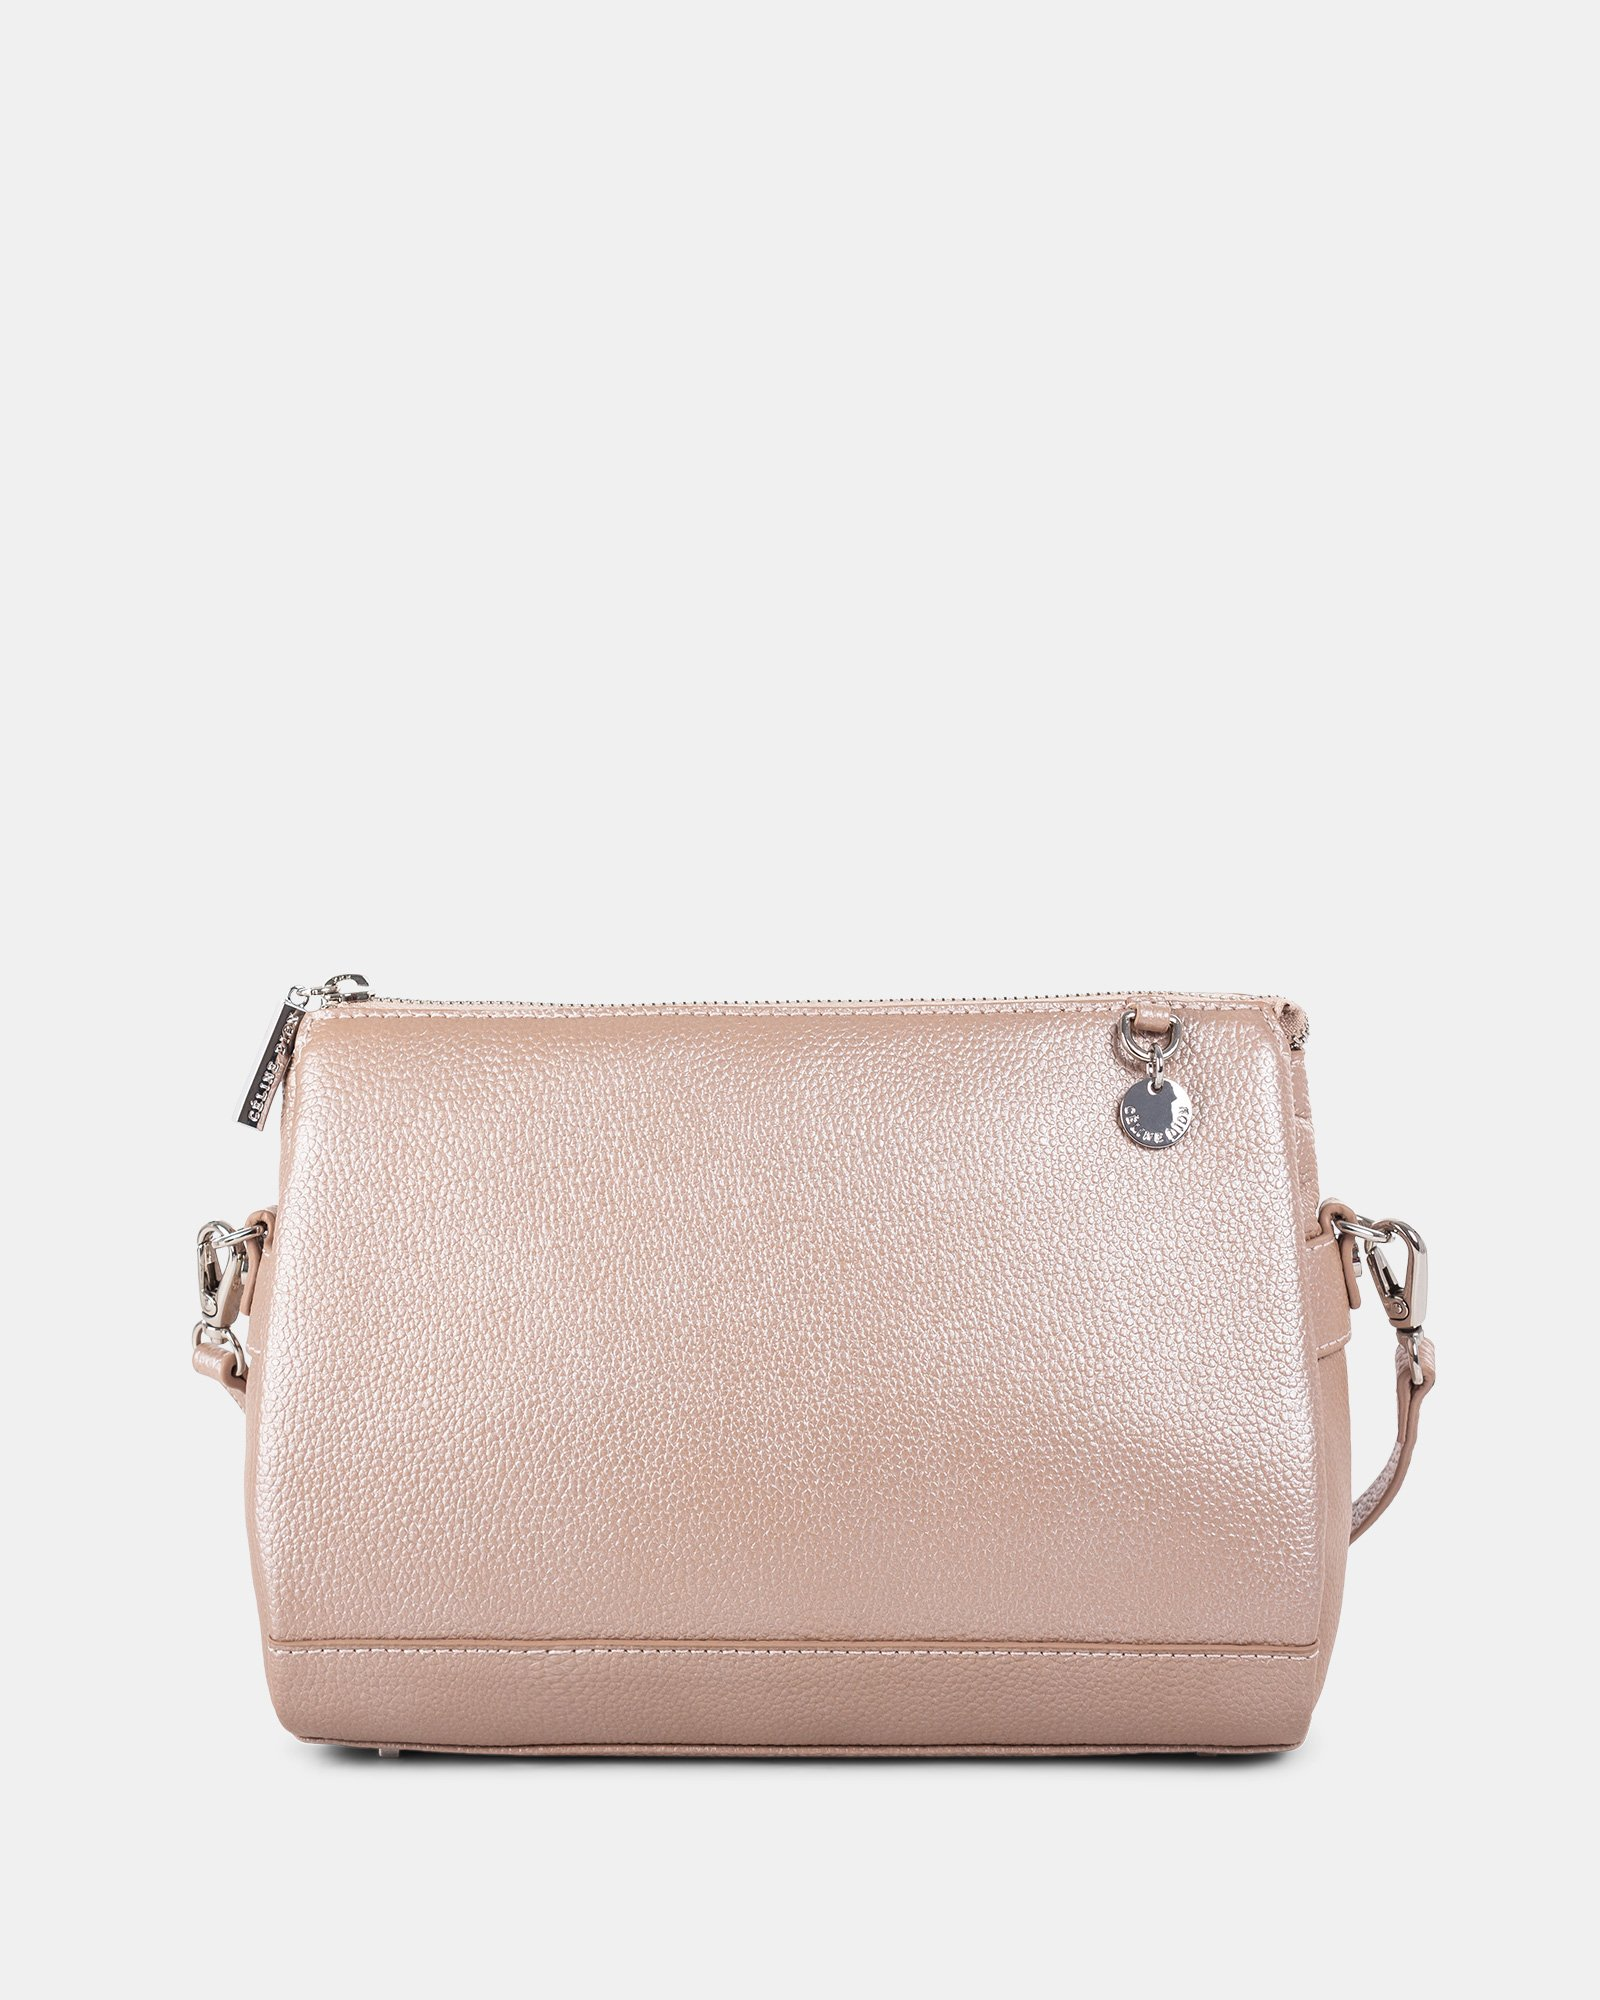 FALSETTO - LEATHER crossbody bag with RFID protection - Rosegold - Céline Dion - Zoom